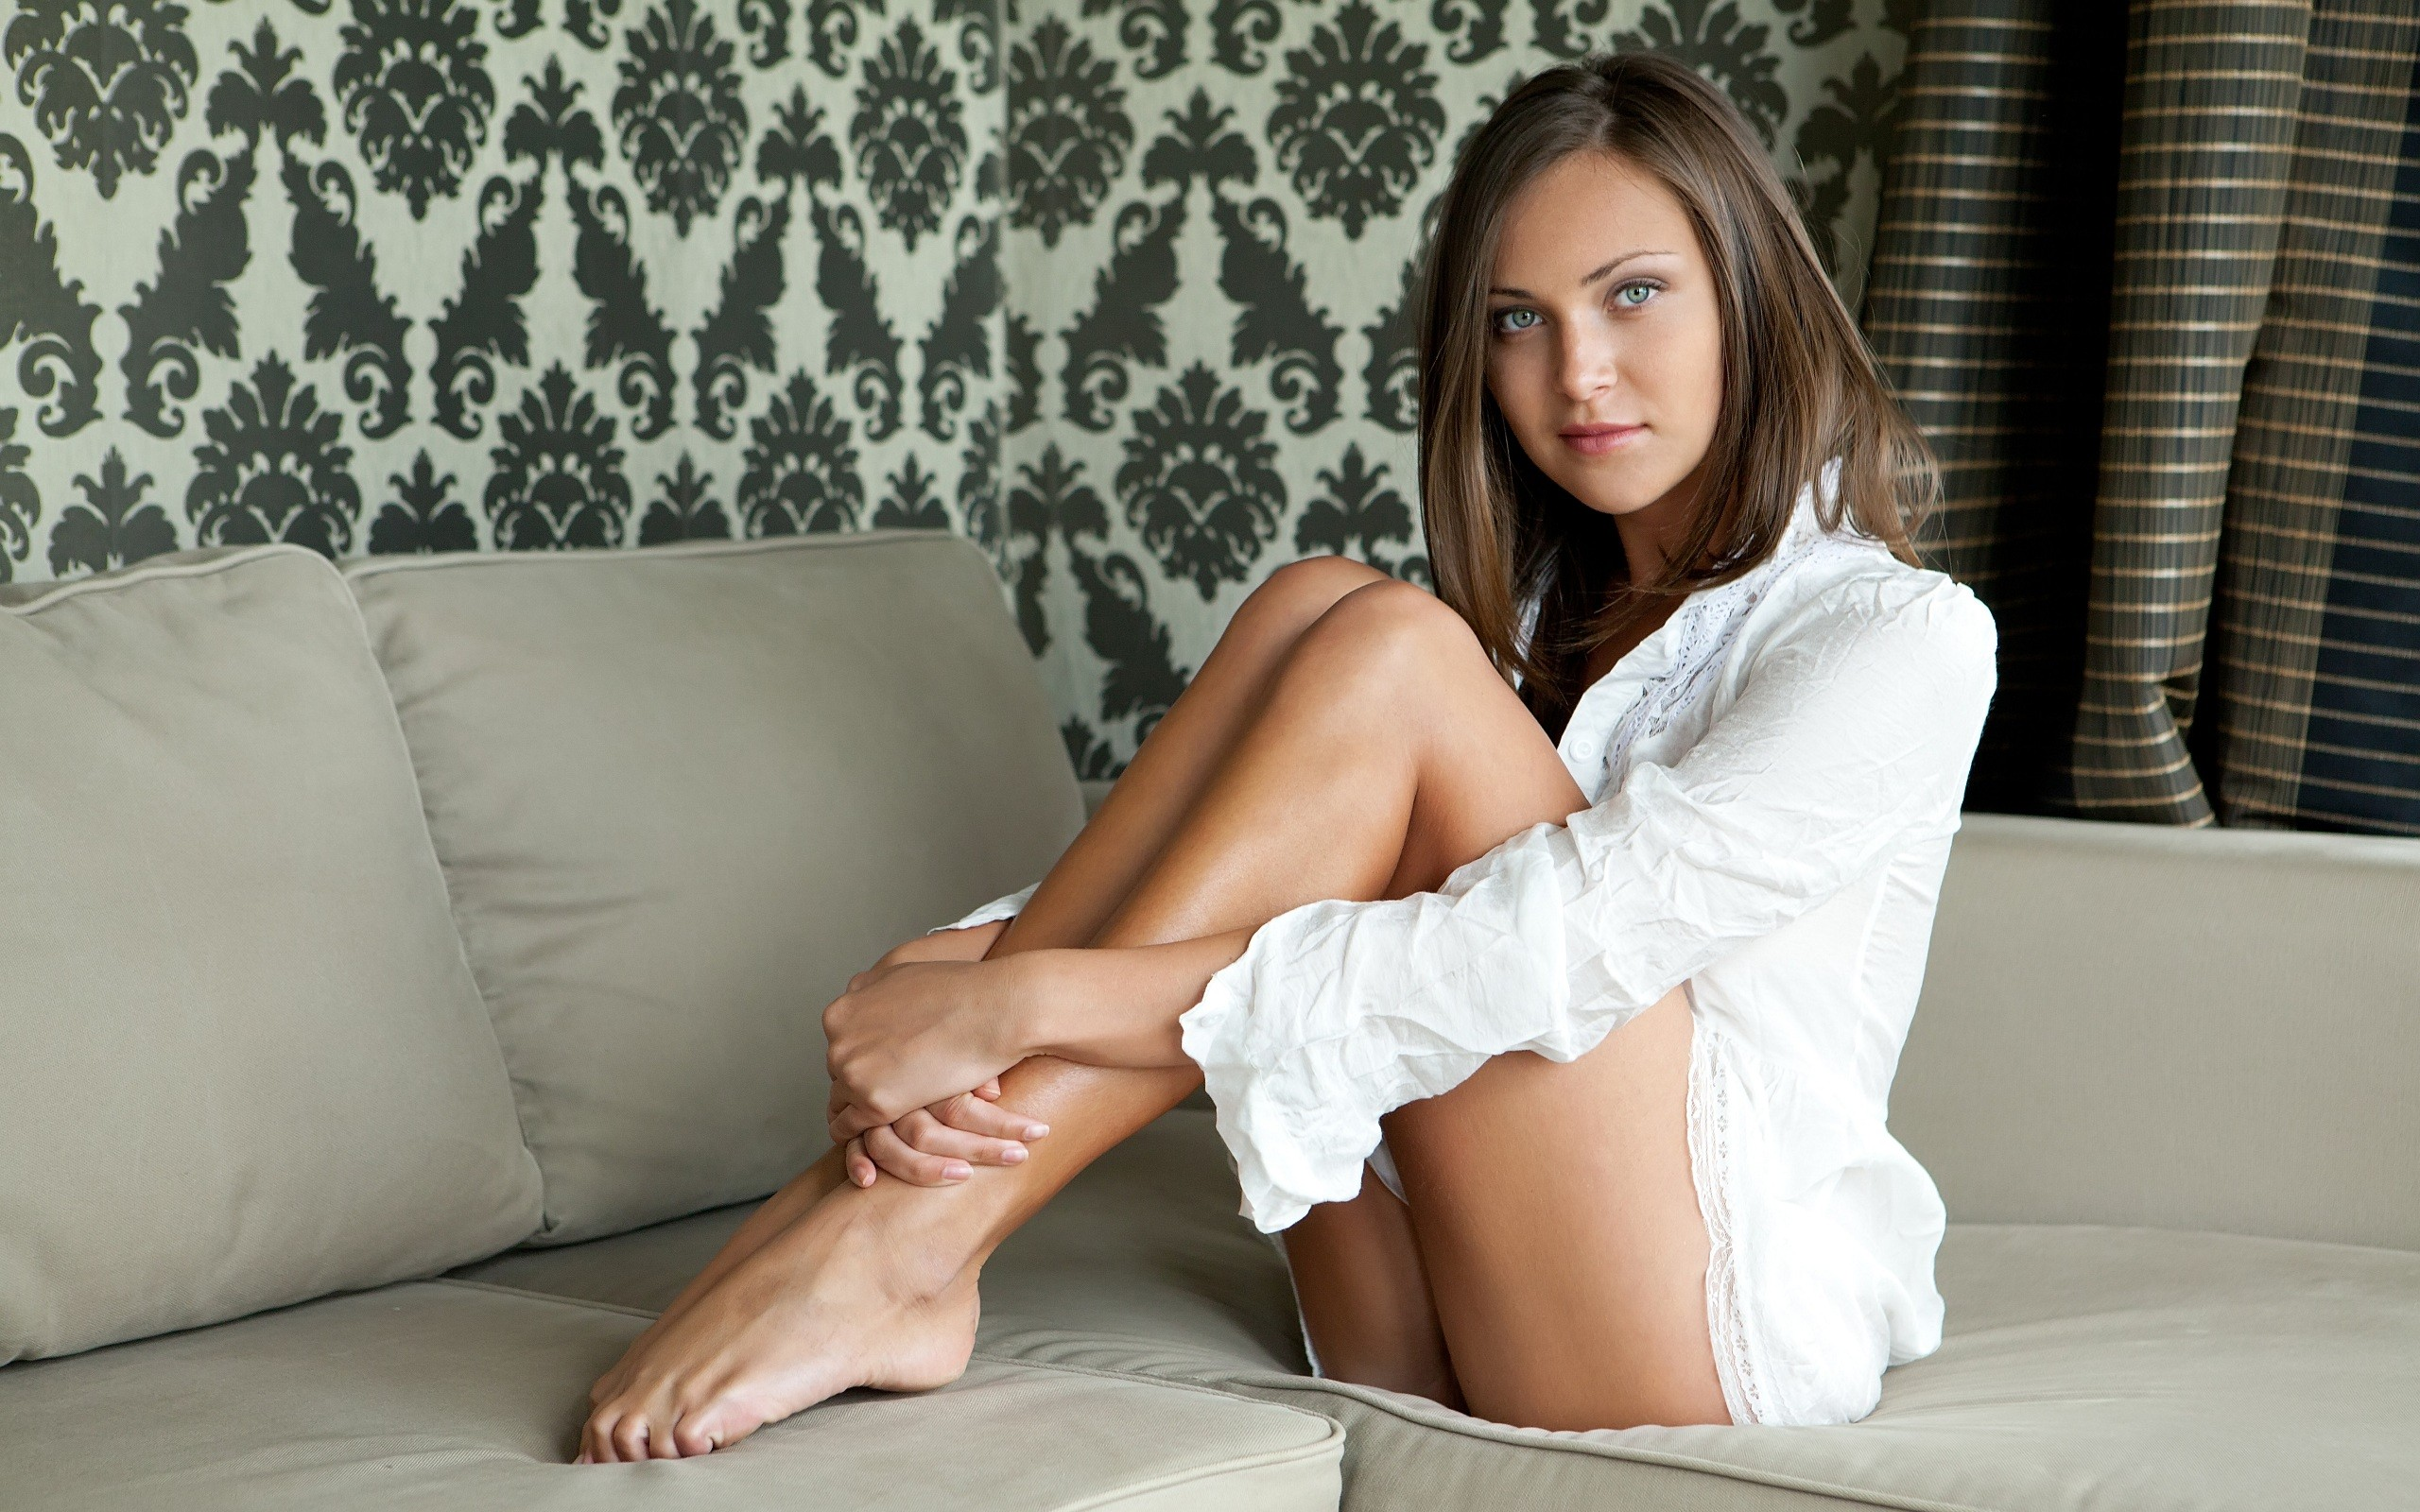 brunettes legs woman couch HD Wallpaper